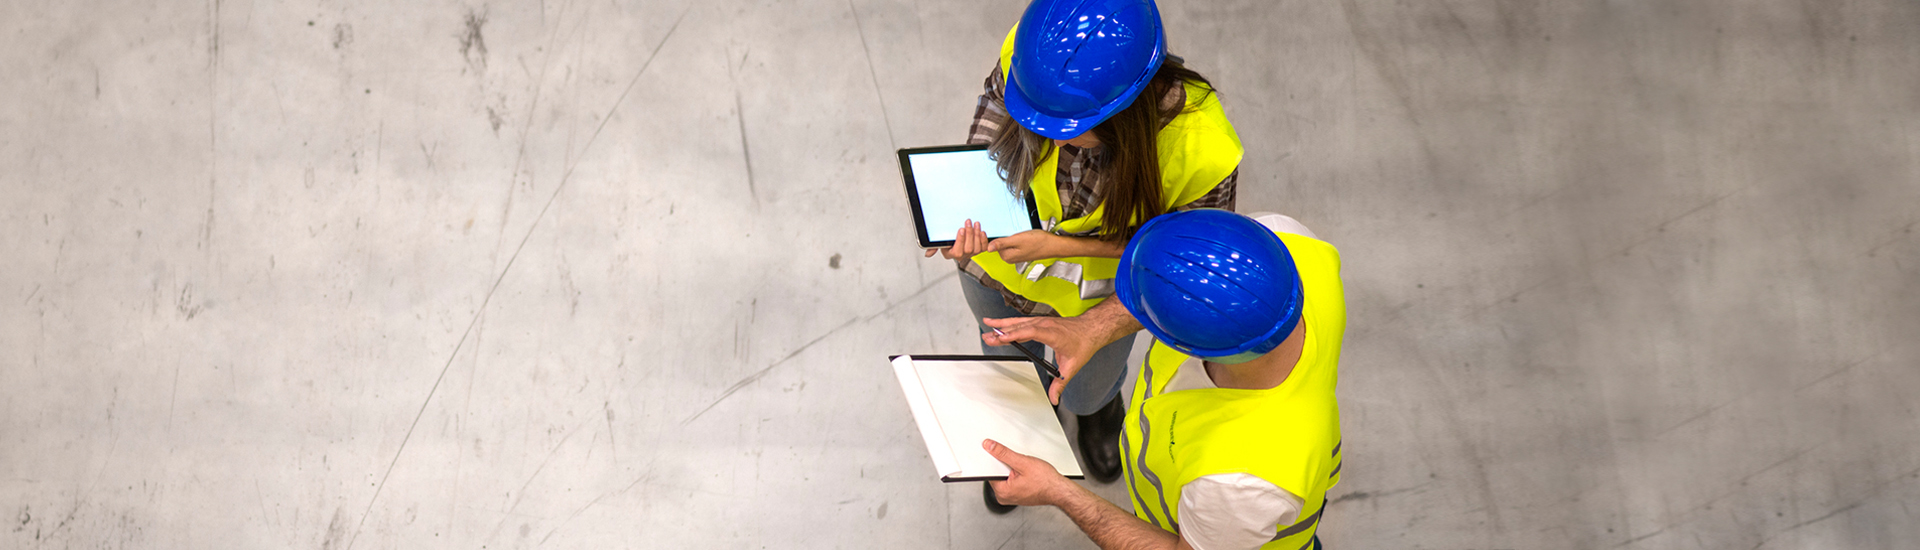 Vye-Blog-Are You Including These 3 Things on Your Manufacturing Job Posts